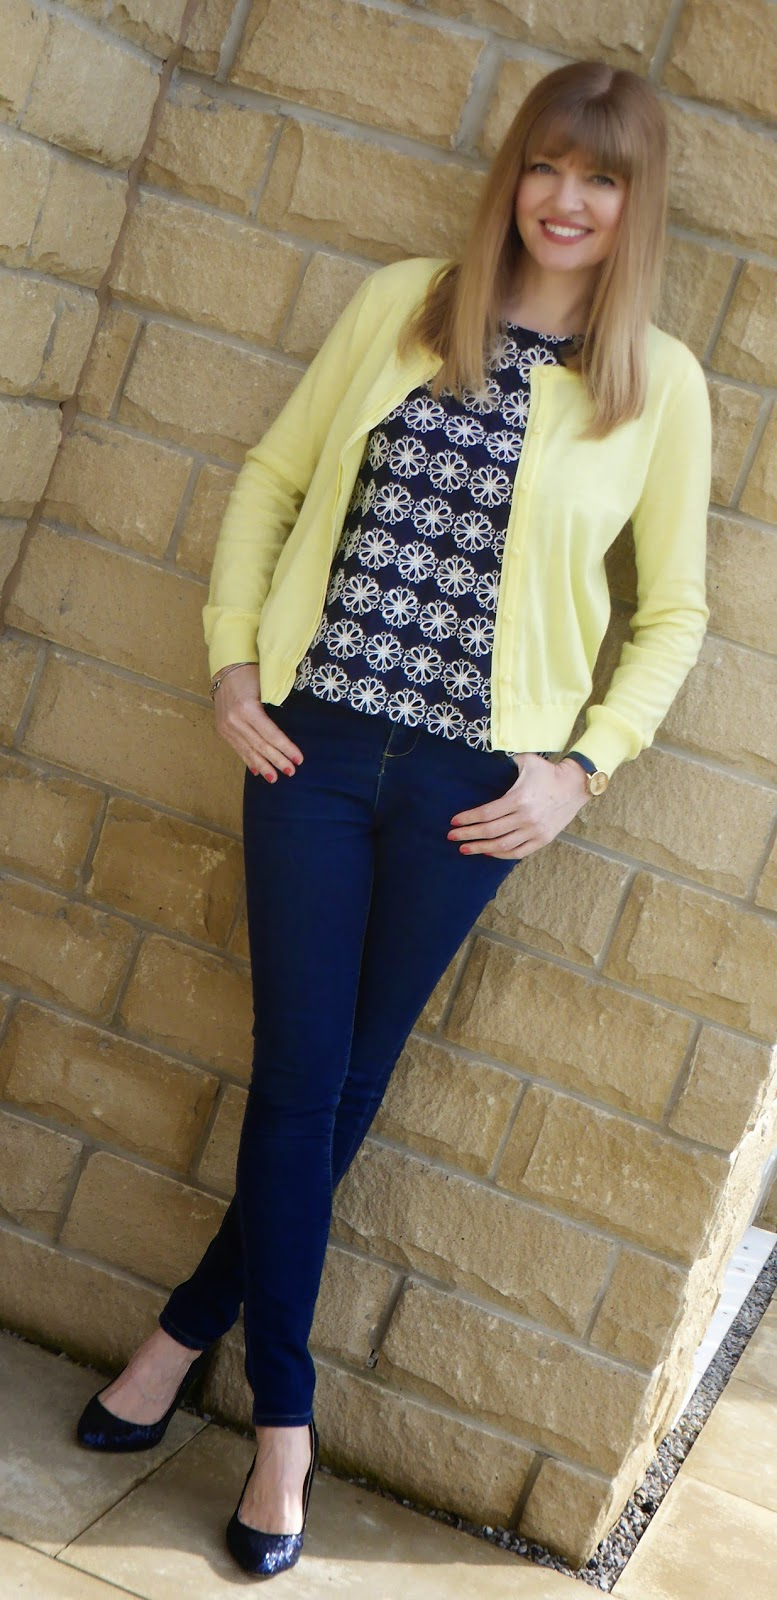 Over 40 Fashion blogger What Lizzy Loves. Navy Boden broderie top, lemon yellow cardigan, skinny jeans and navy sequin court shoes